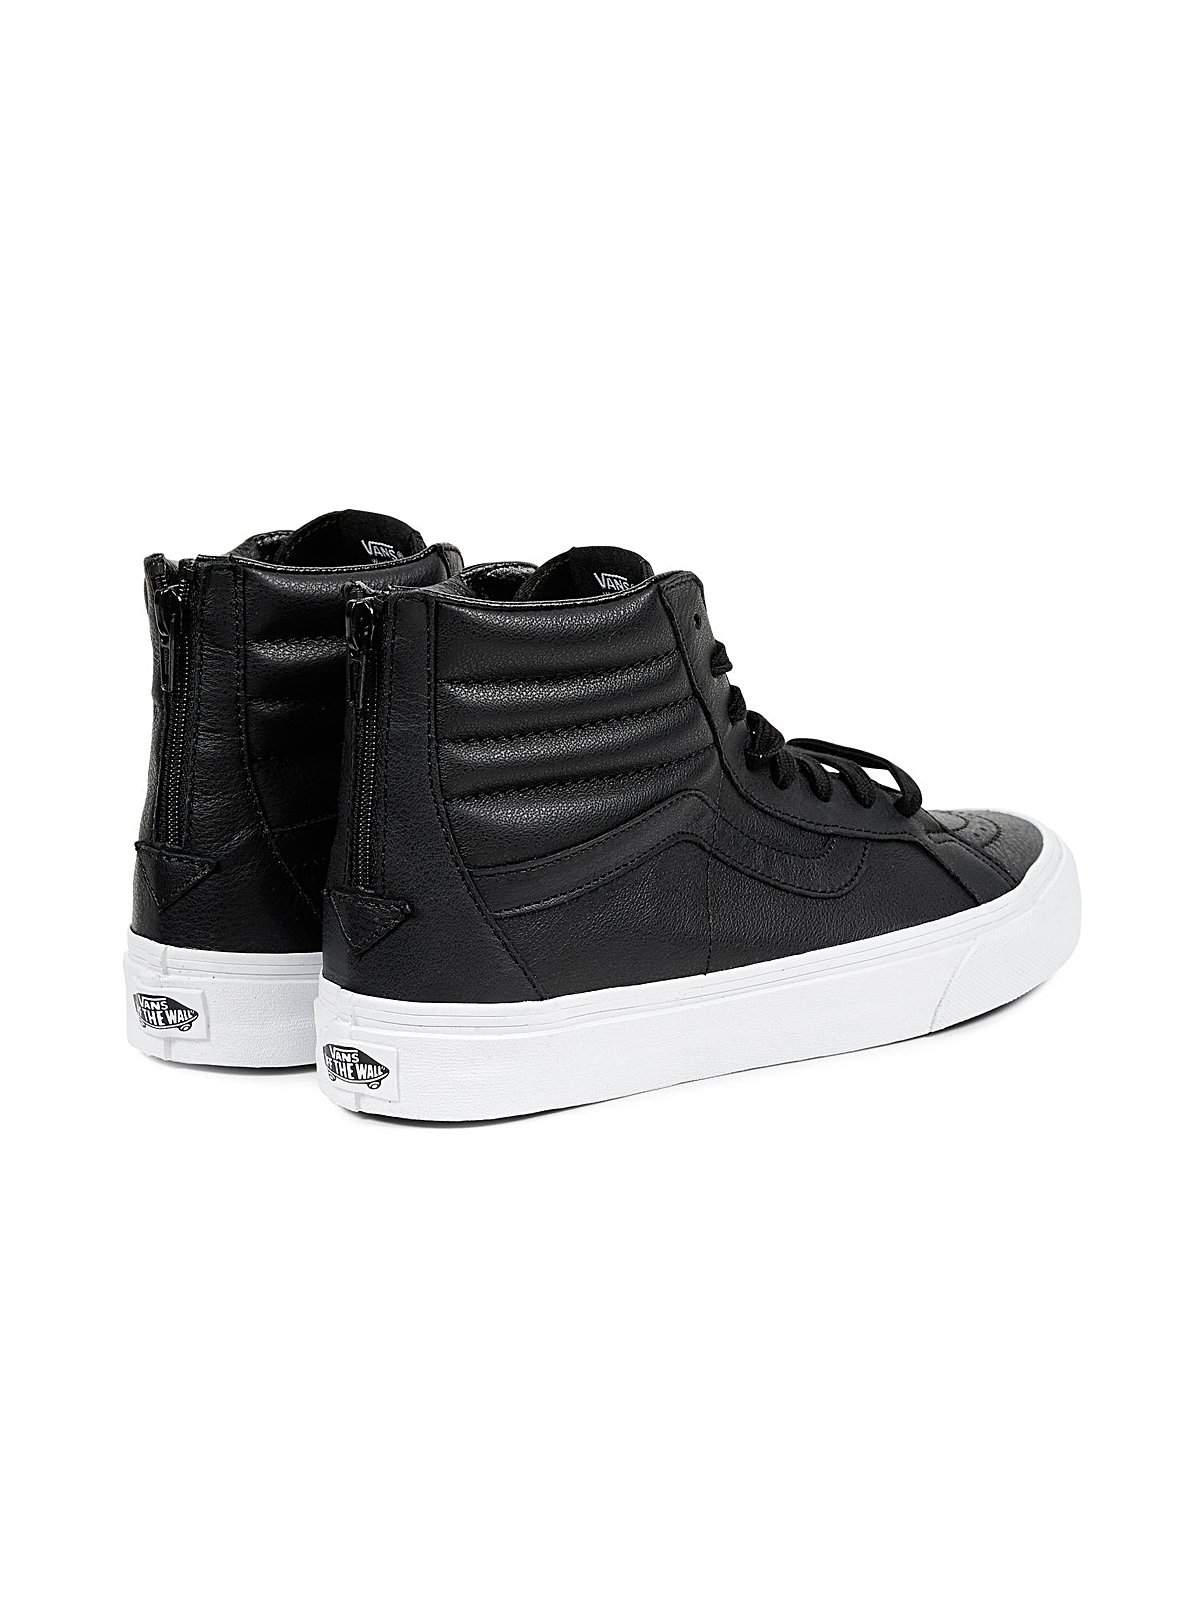 46aba84844 Vans SK8 HI Reissue Zip Premium Leather Black - MORE by Morello ...